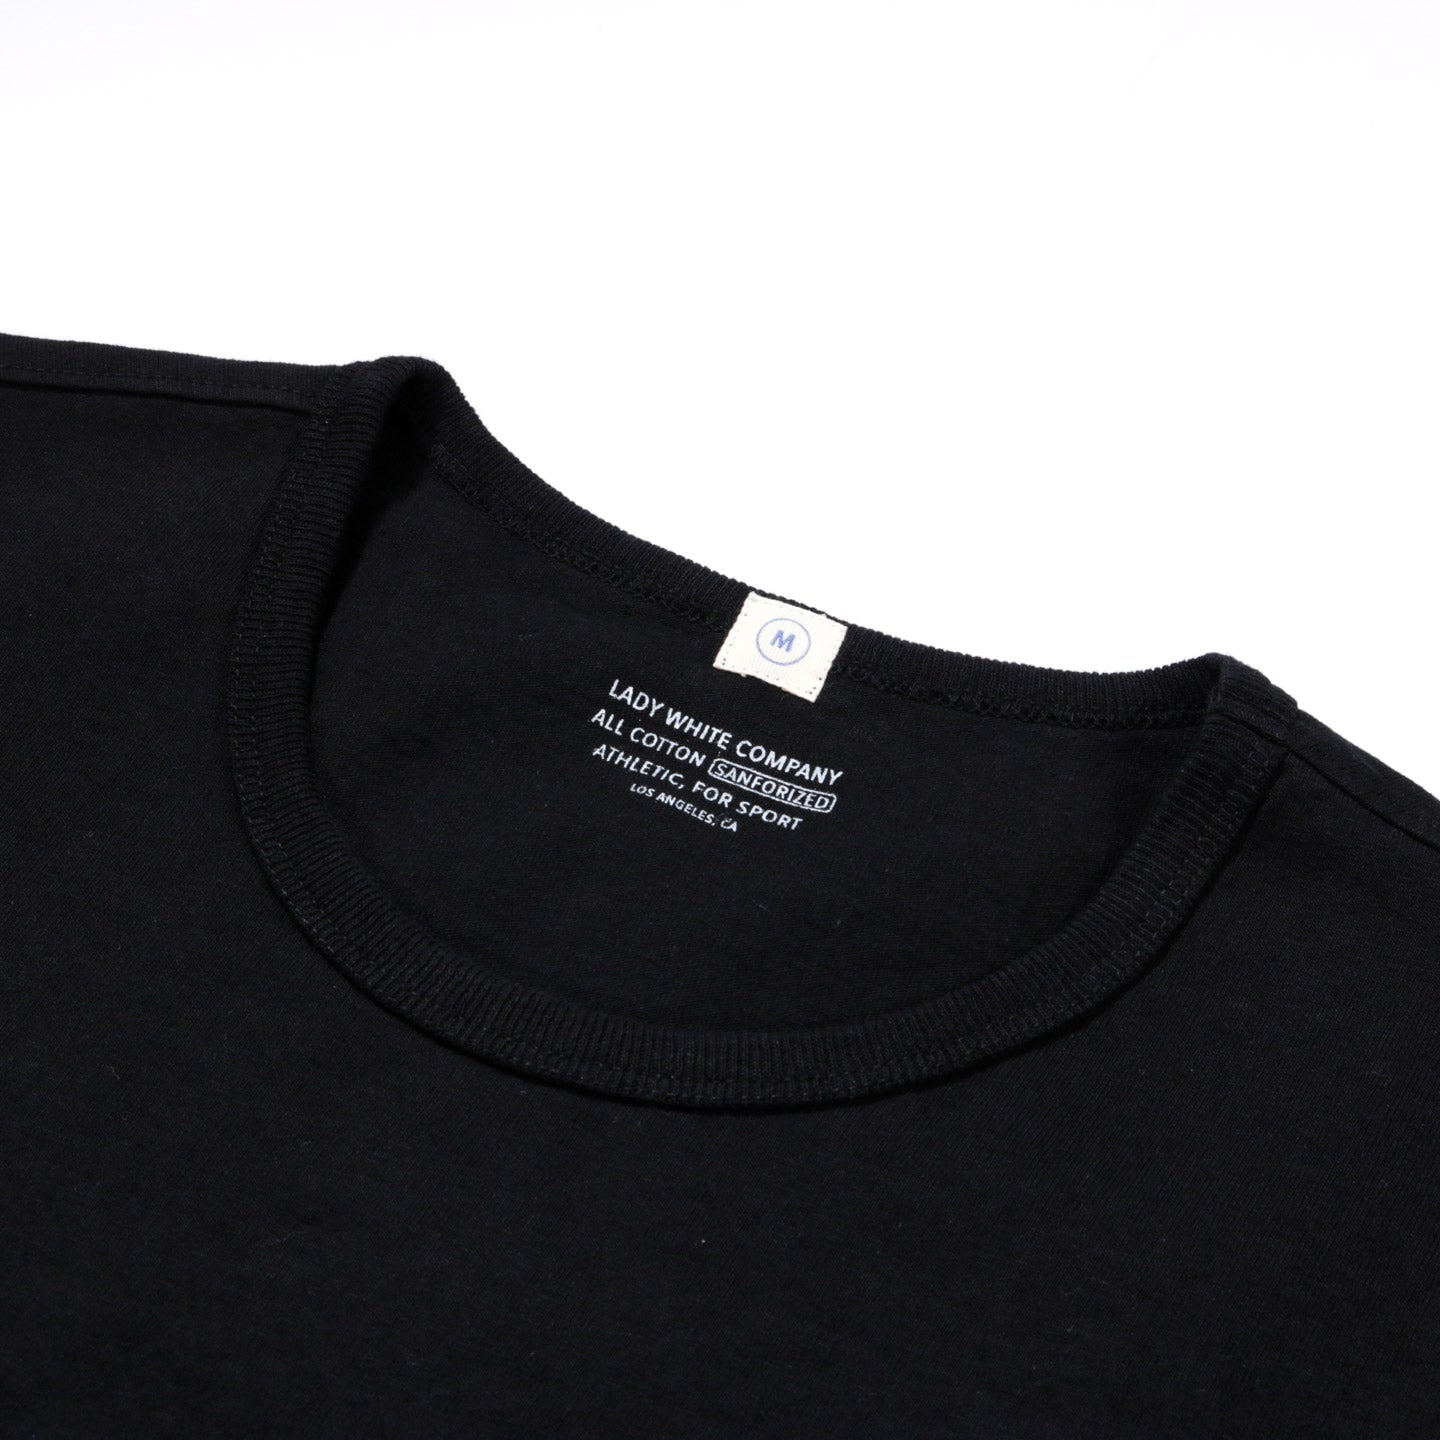 LADY WHITE CO. T-SHIRT 2-PACK BLACK